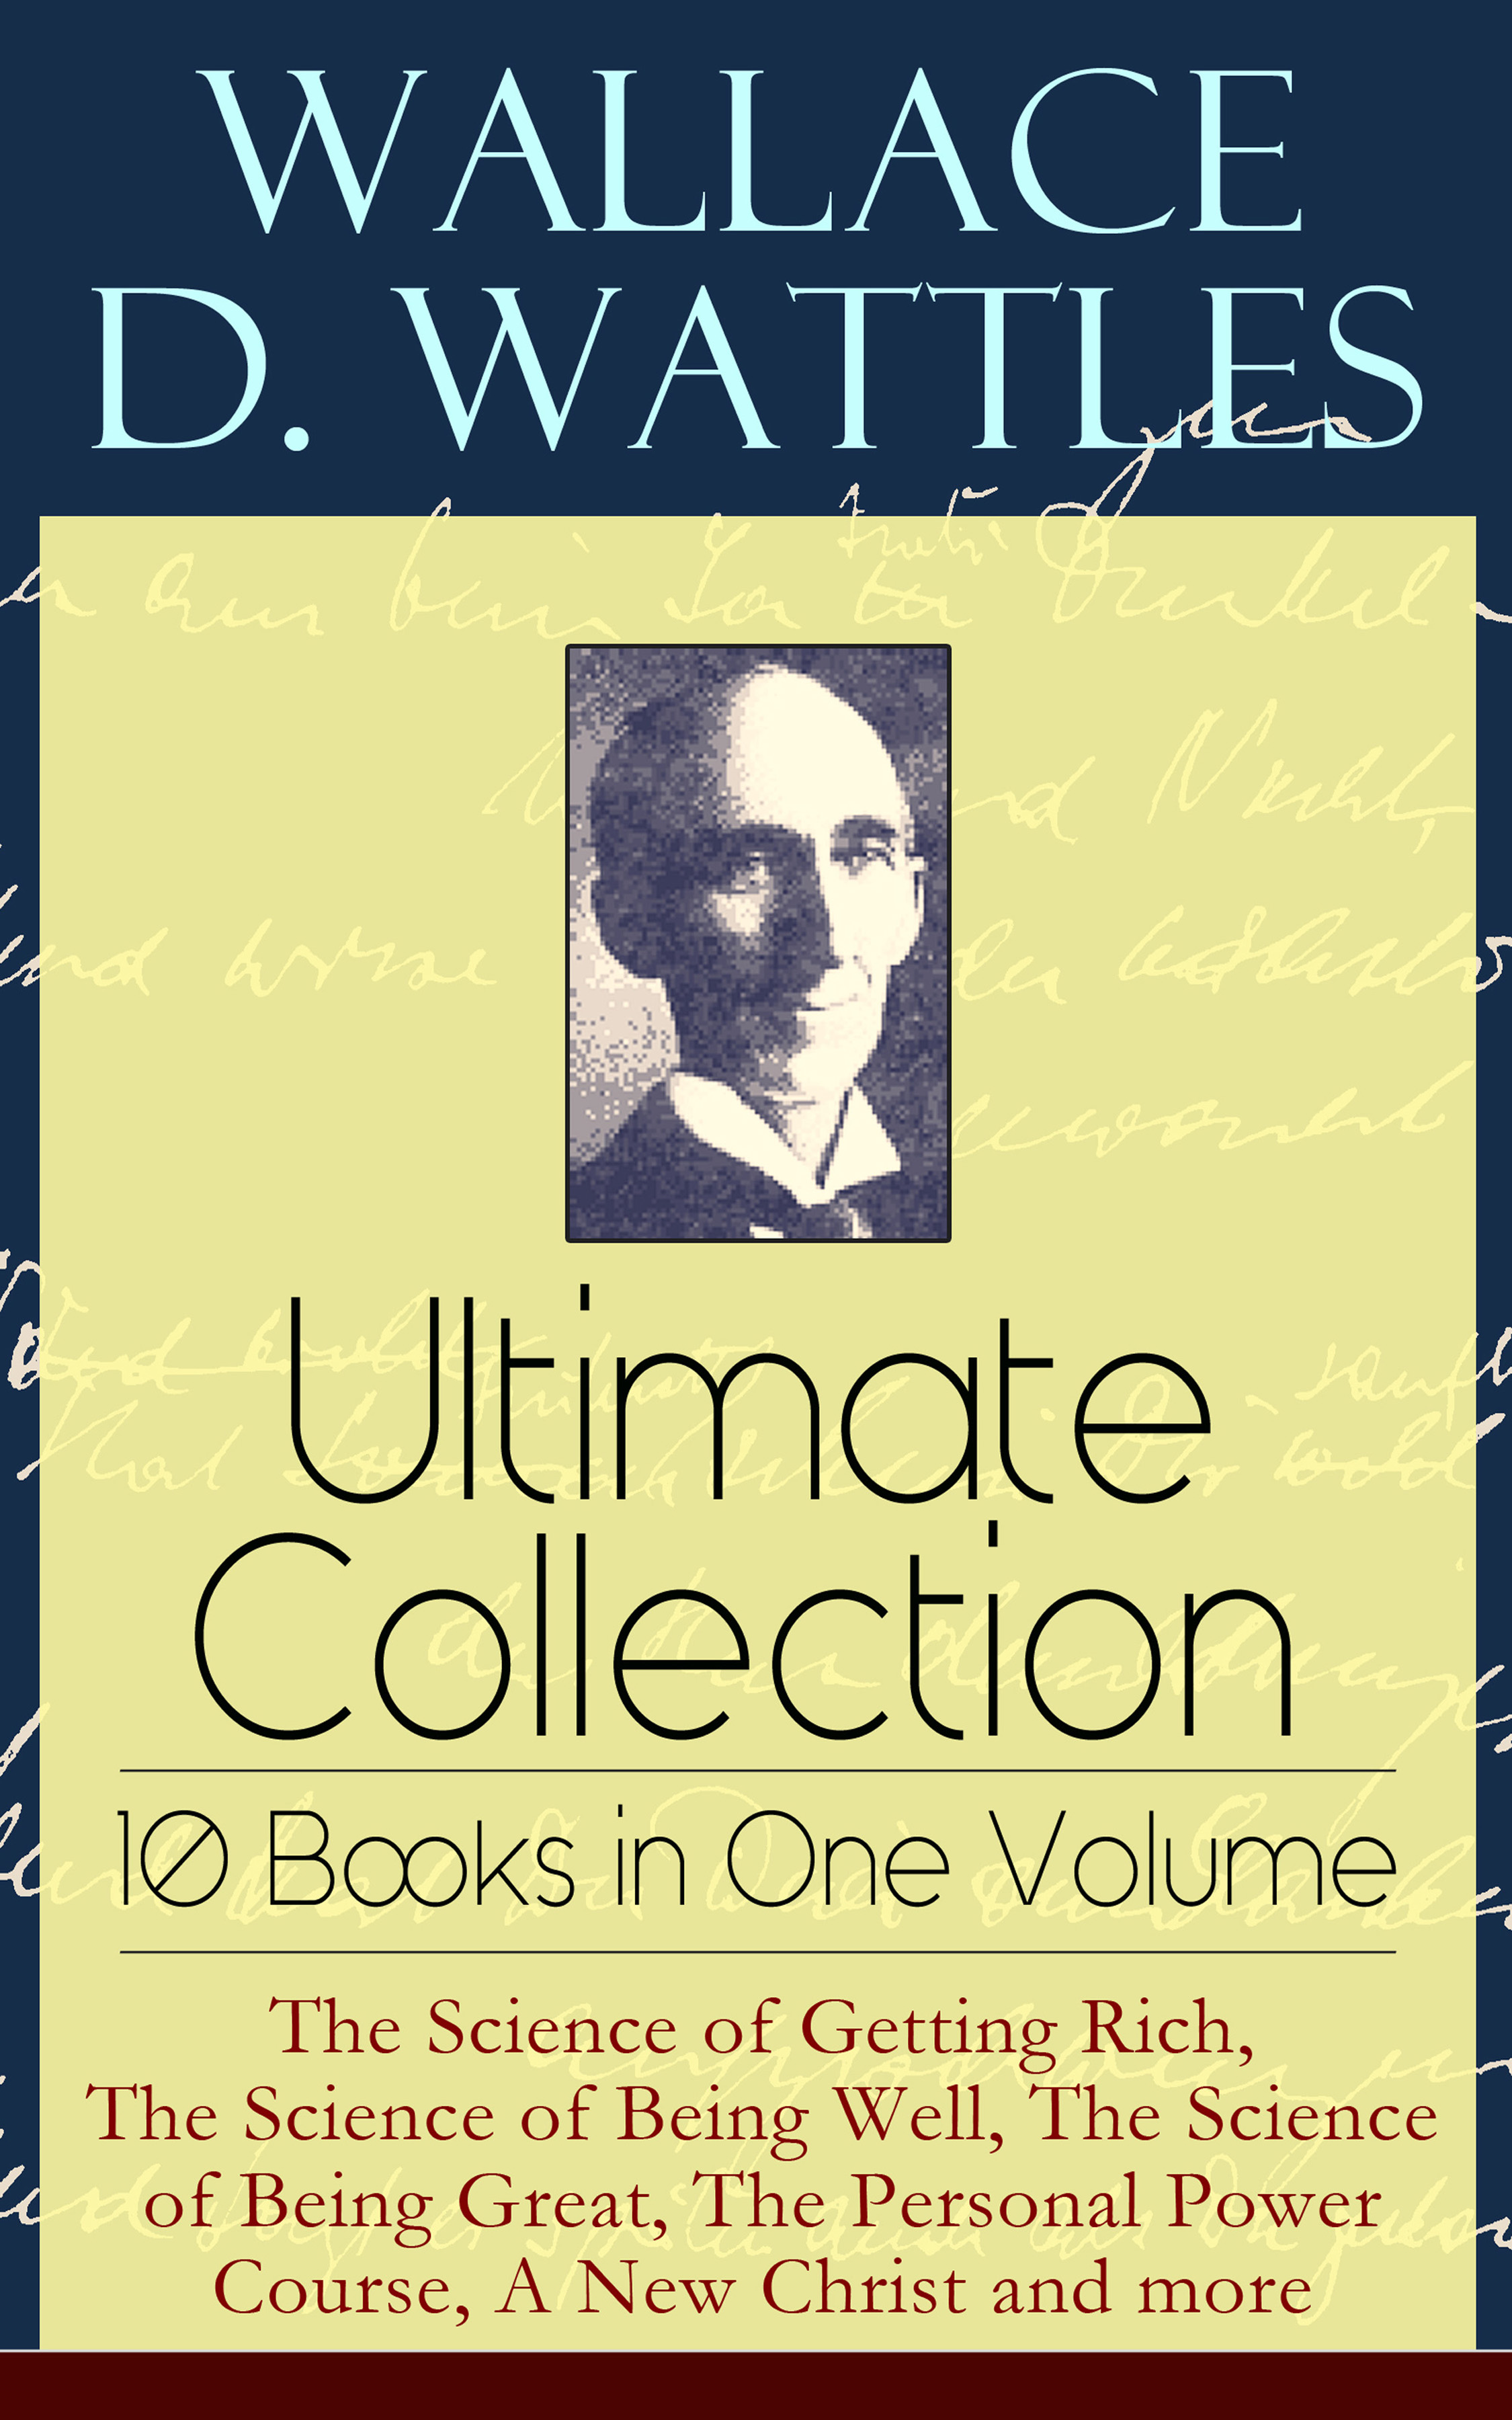 Wallace D. Wattles Wallace D. Wattles Ultimate Collection – 10 Books in One Volume: The Science of Getting Rich, The Science of Being Well, The Science of Being Great, The Personal Power Course, A New Christ and more the yardbirds the yardbirds the ultimate collection 2 cd